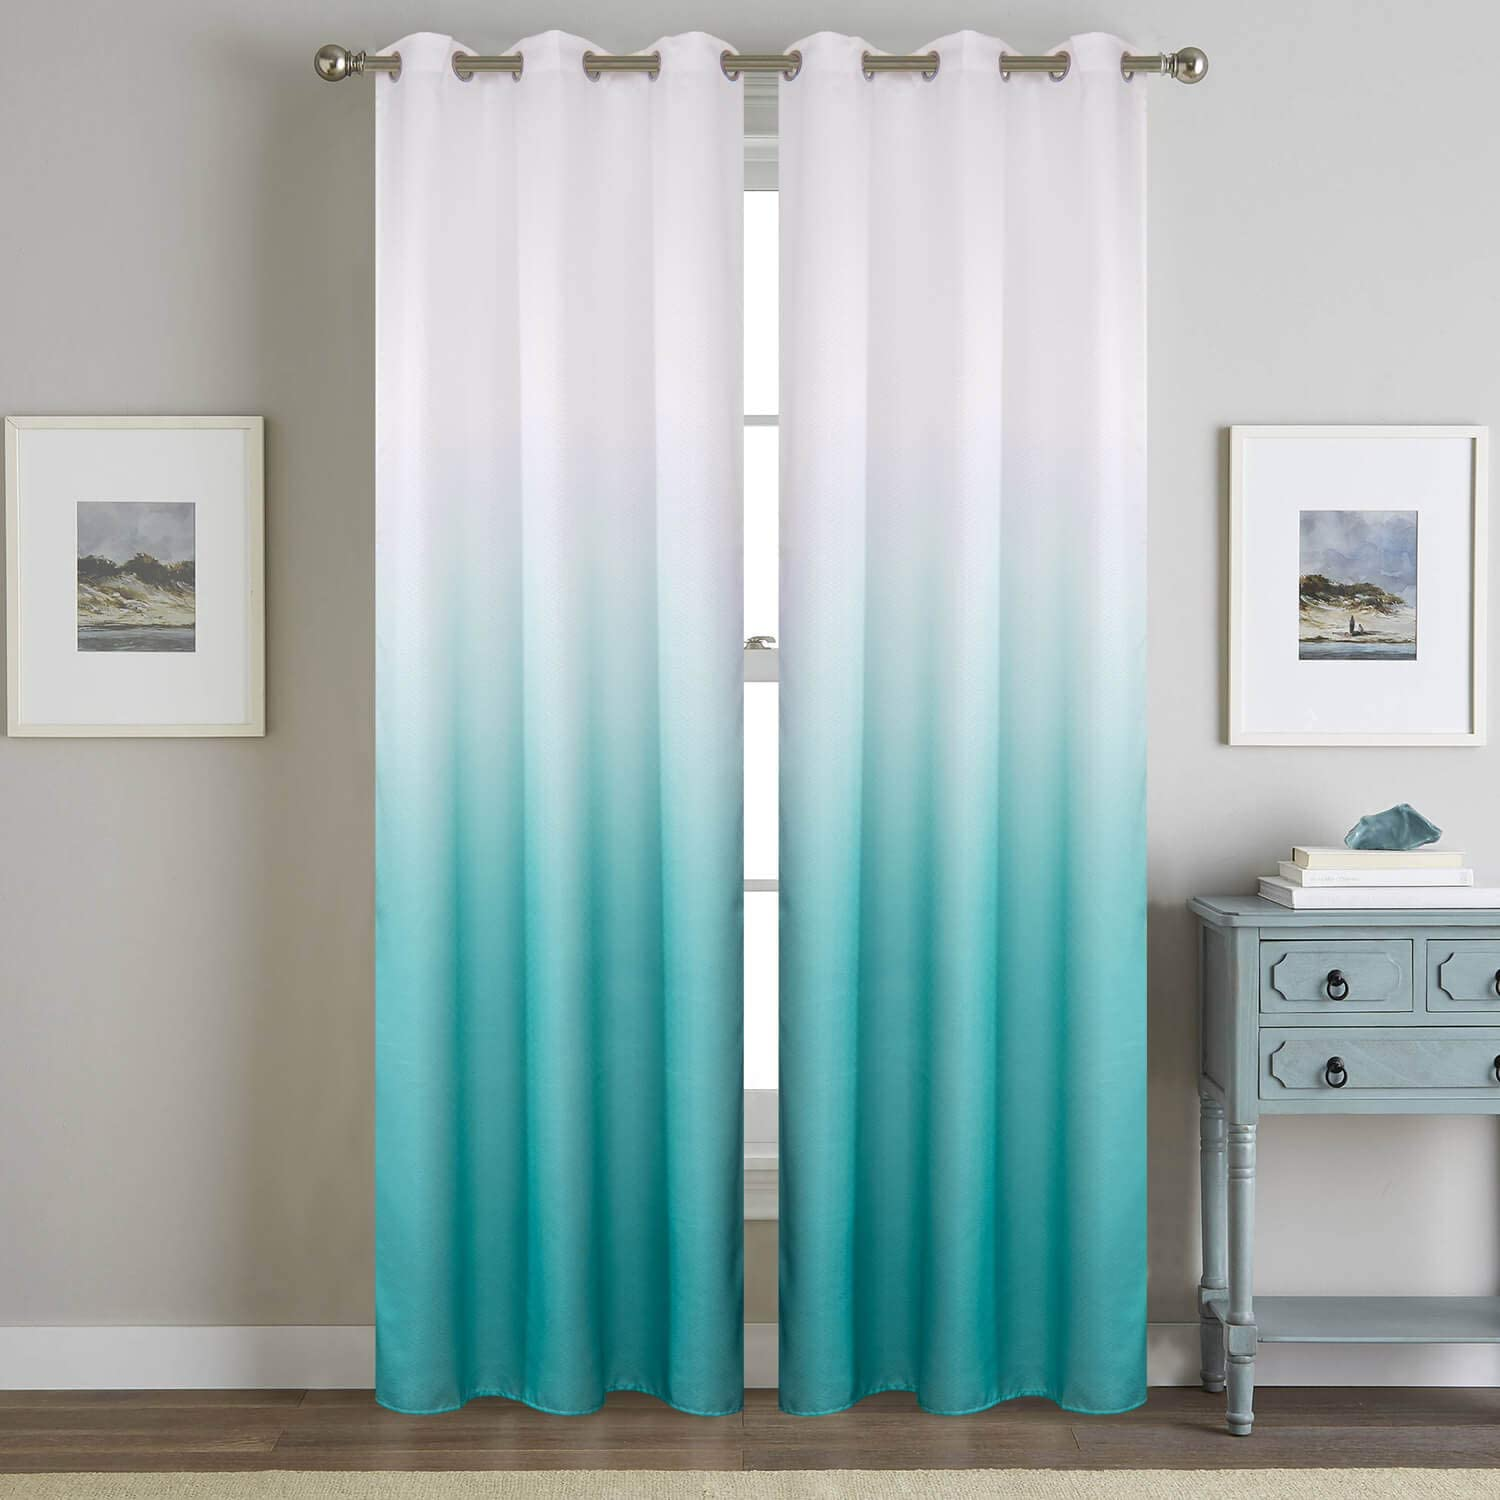 Teal Semi Blackout Curtains Set Of 2 Panels Thermal Insulated Grommet Turquoise Window Treatment Curtains 84 Inches Long Ombre Drapes For Kids Bedroom Living Room Light Blocking Amazon Co Uk Kitchen Home